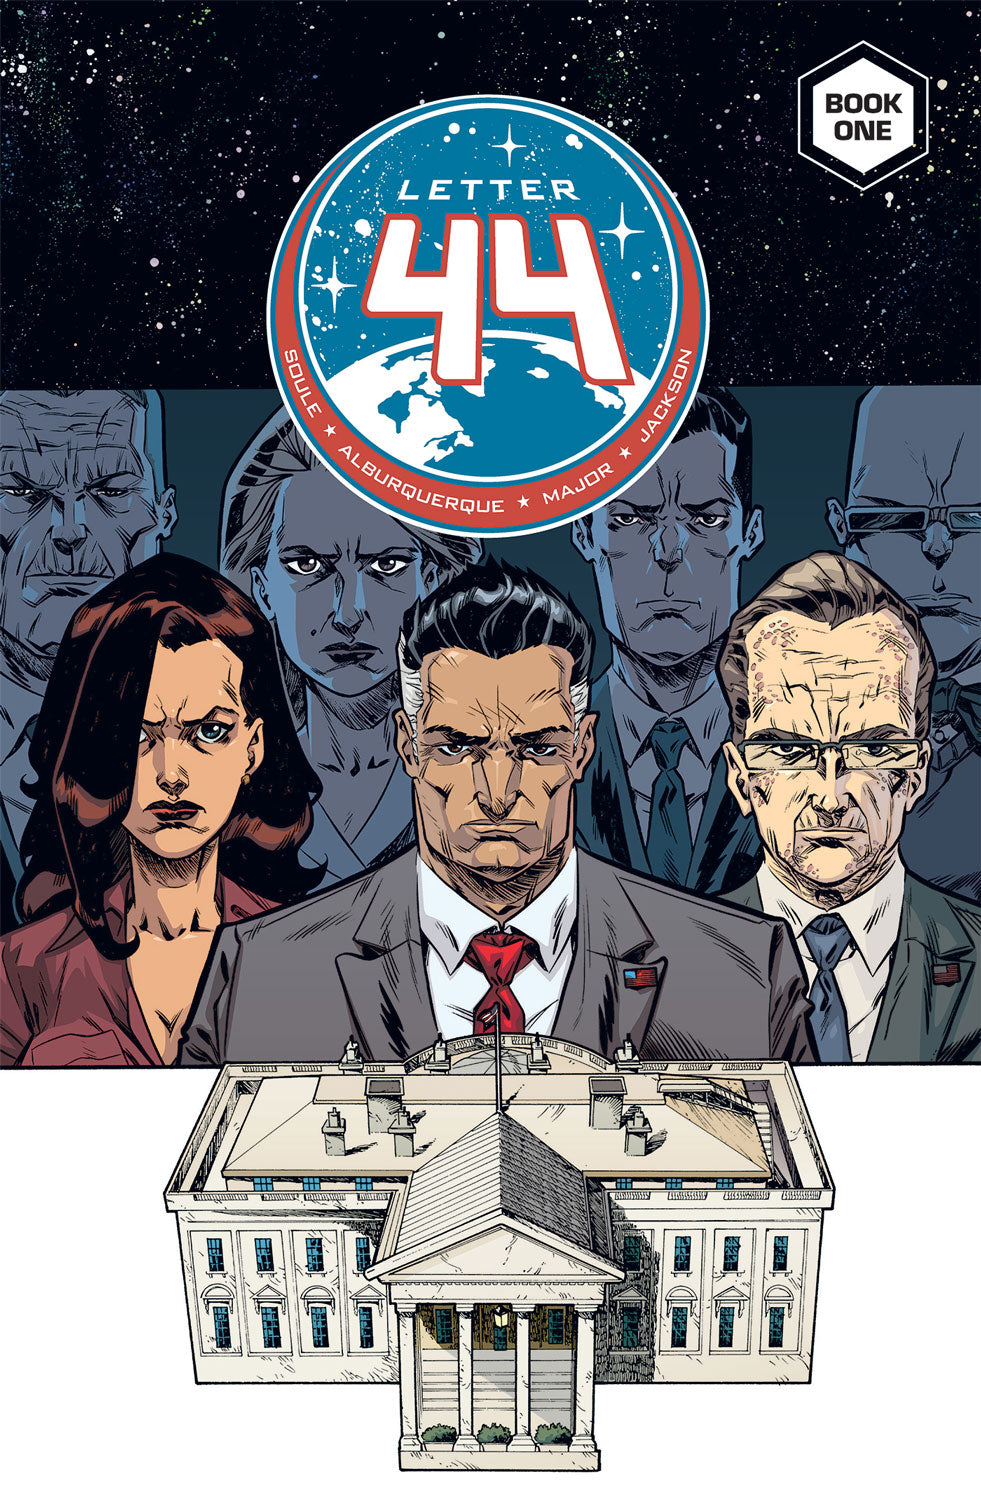 Letter 44 Vol. 1 - Deluxe Hardcover